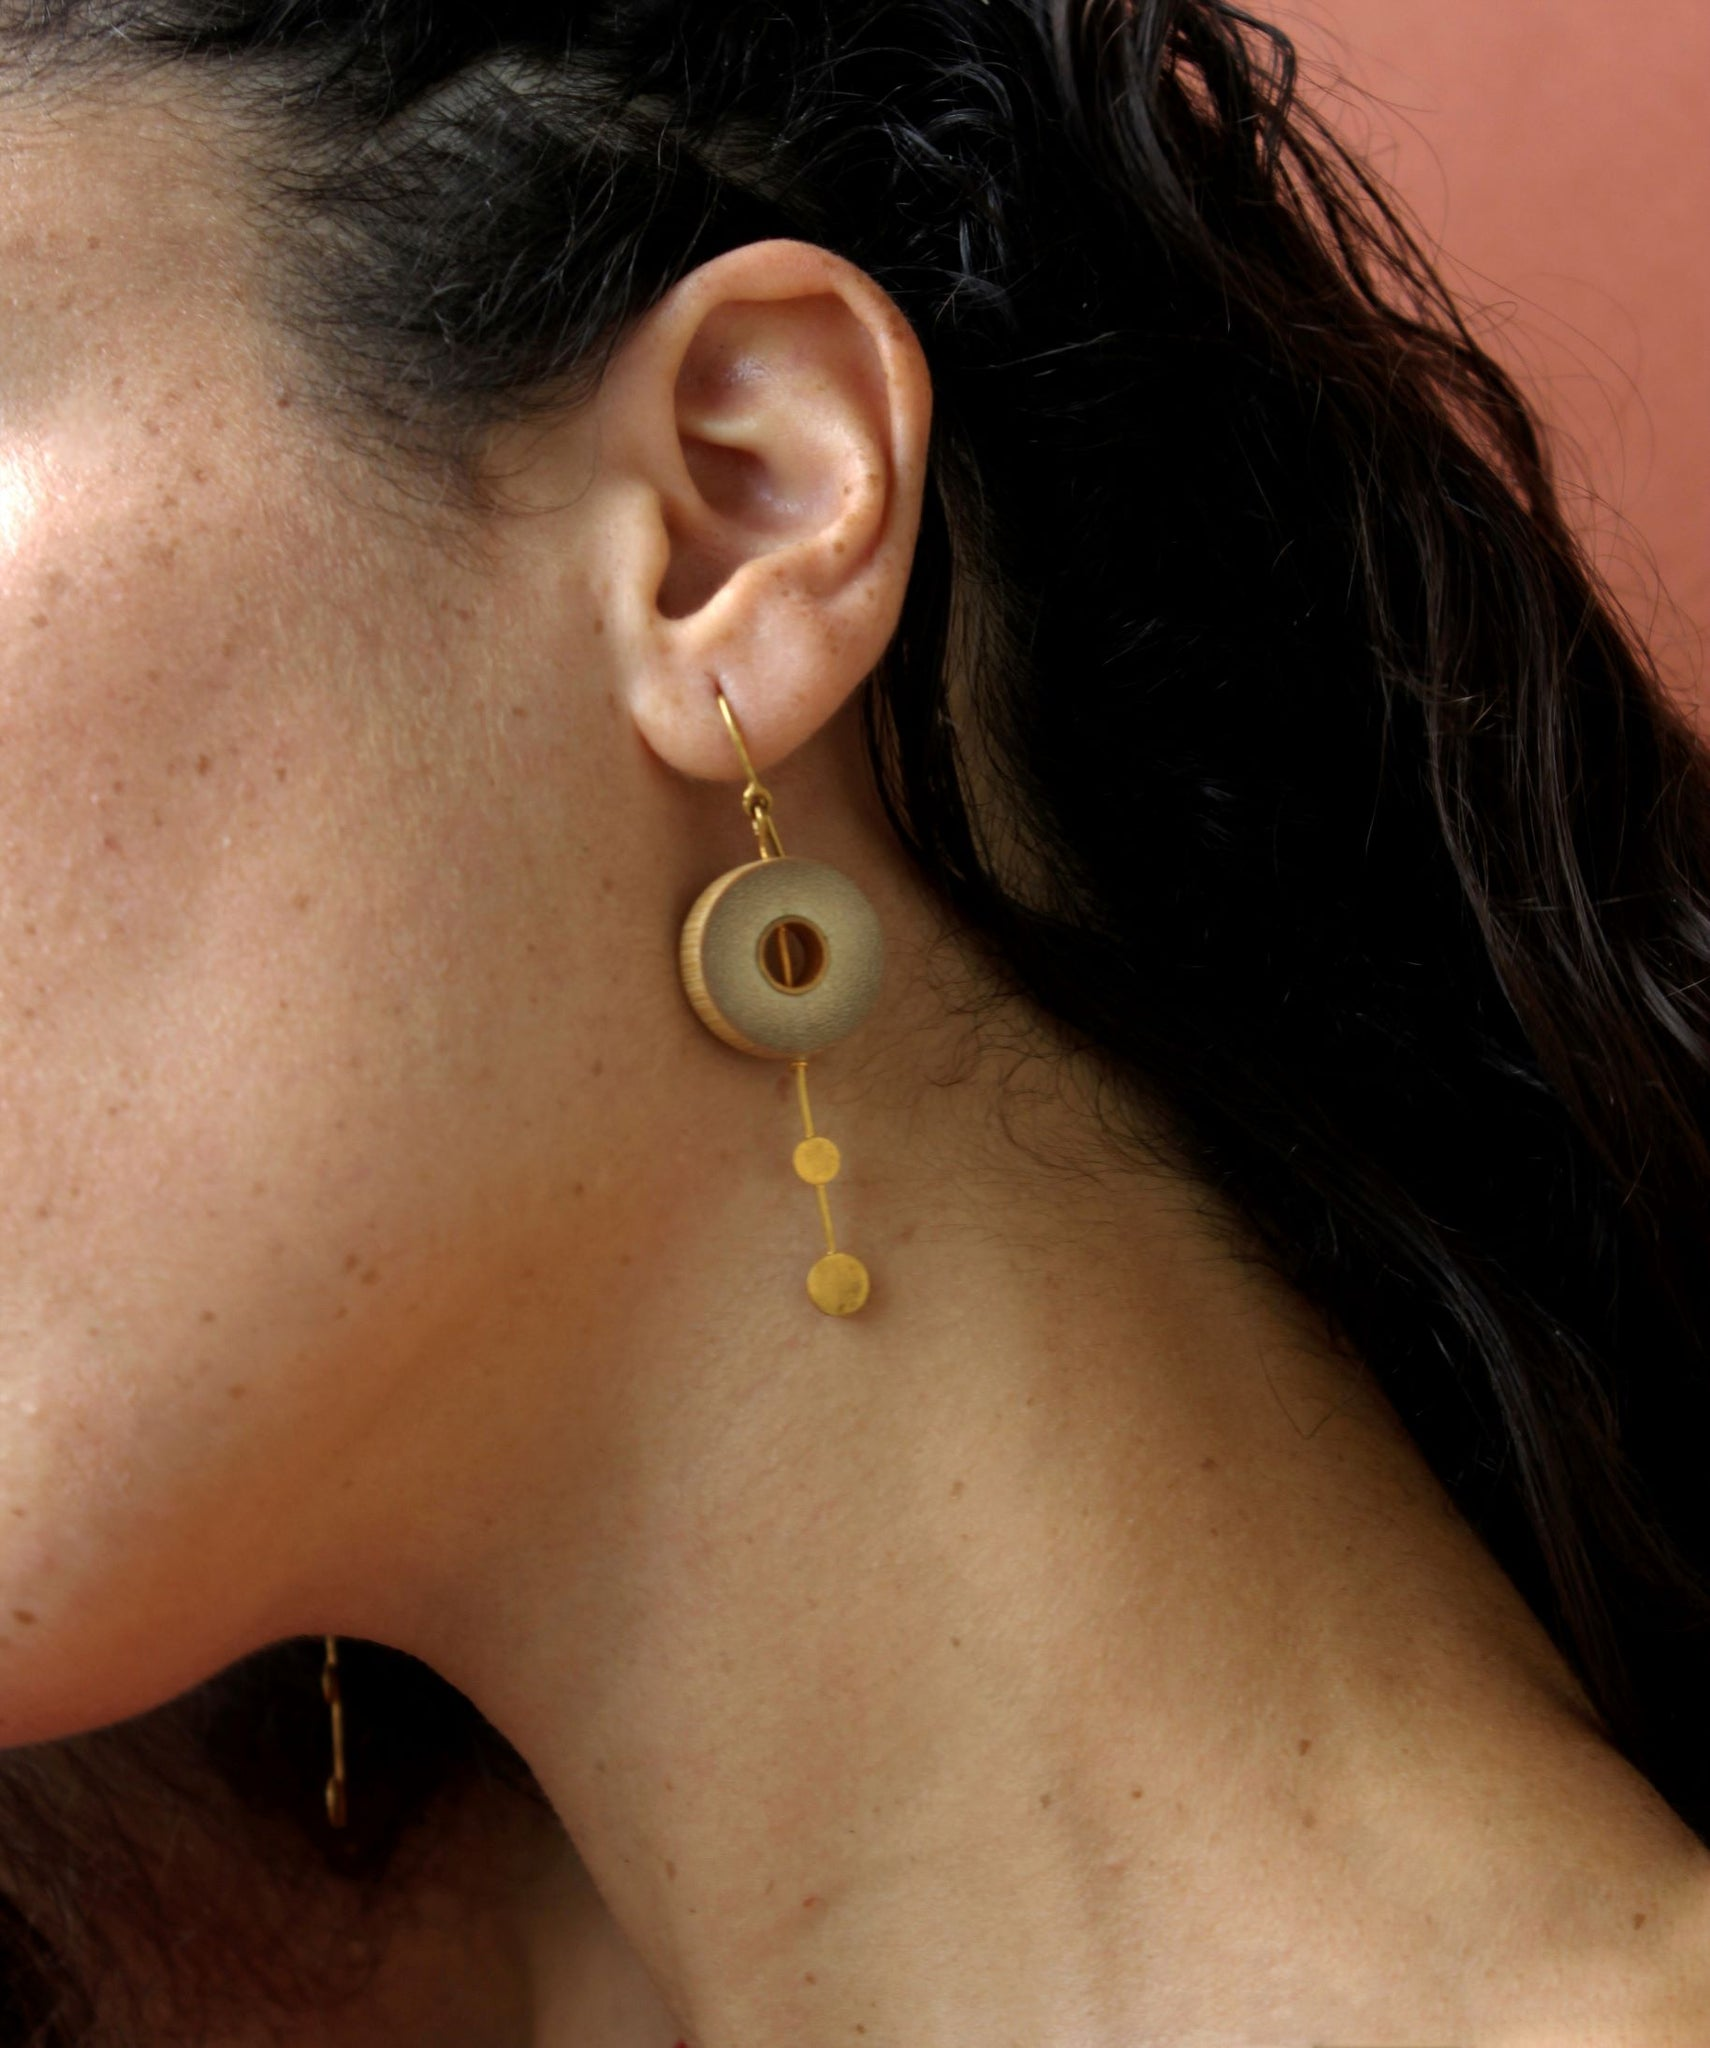 Rhea Handcrafted Gold Earrings (RG-5) in Bamboo and Gold-plated Brass